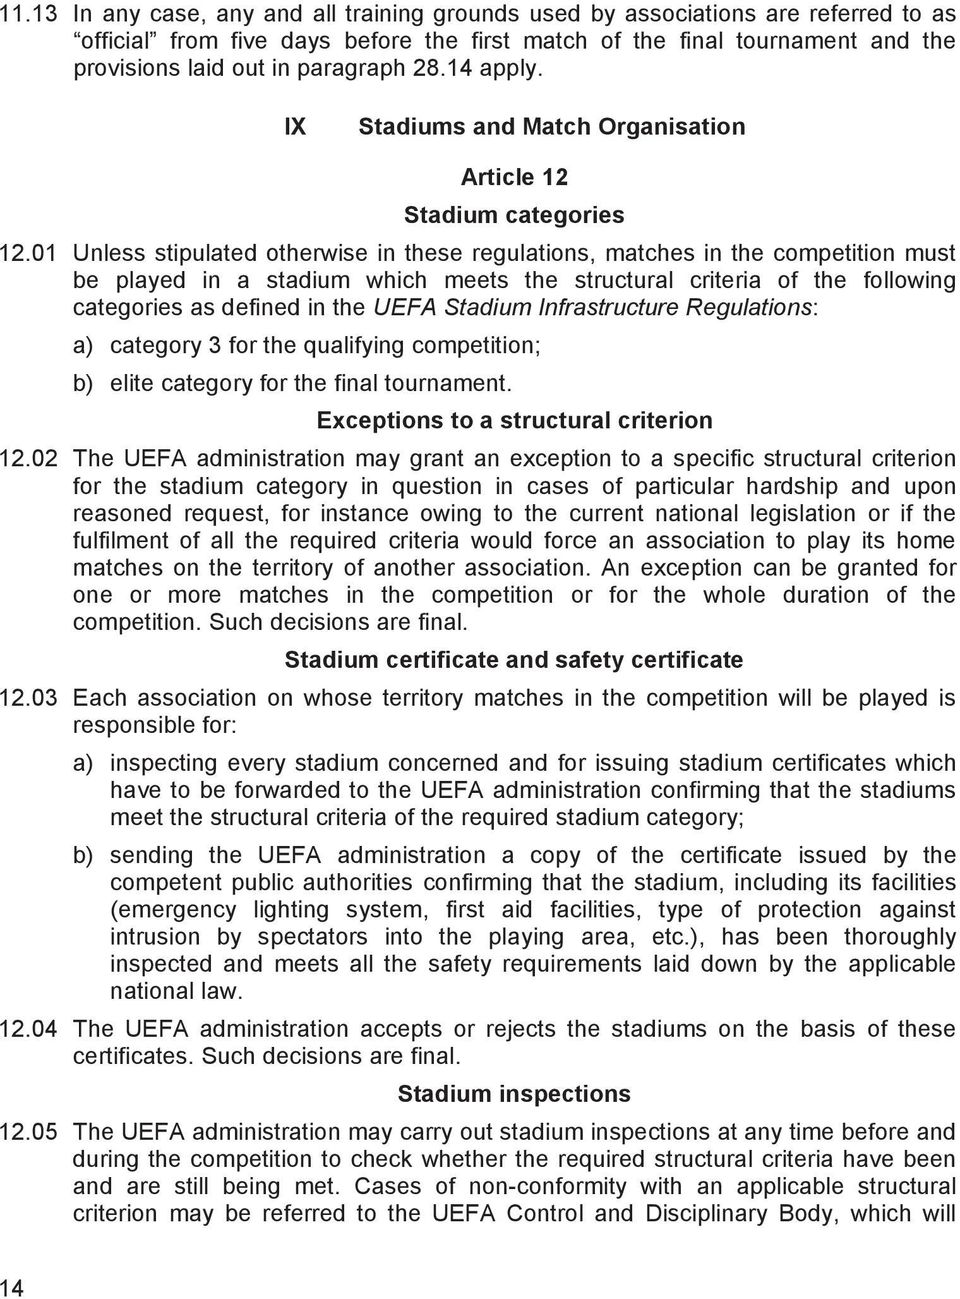 01 Unless stipulated otherwise in these regulations, matches in the competition must be played in a stadium which meets the structural criteria of the following categories as defined in the UEFA